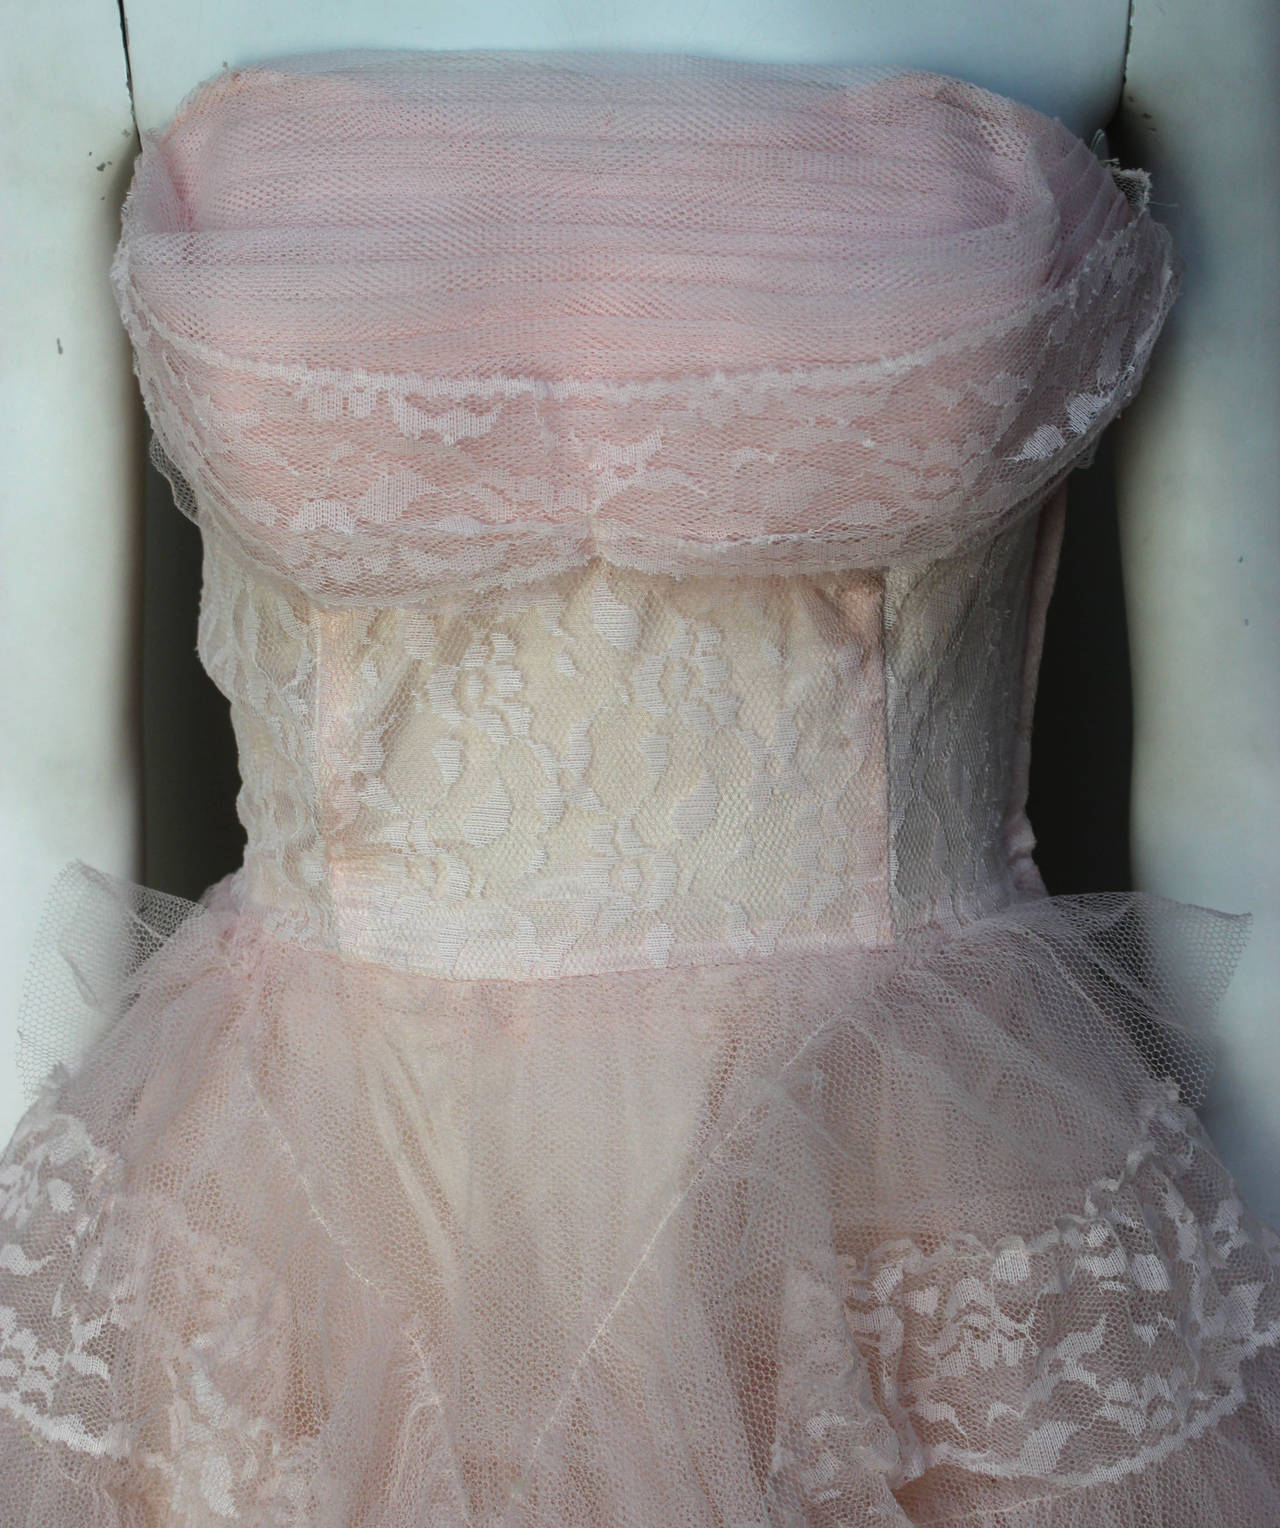 Stunning Never Worn 1950s Pink Tulle Evening Dress with Lace Bolero 8